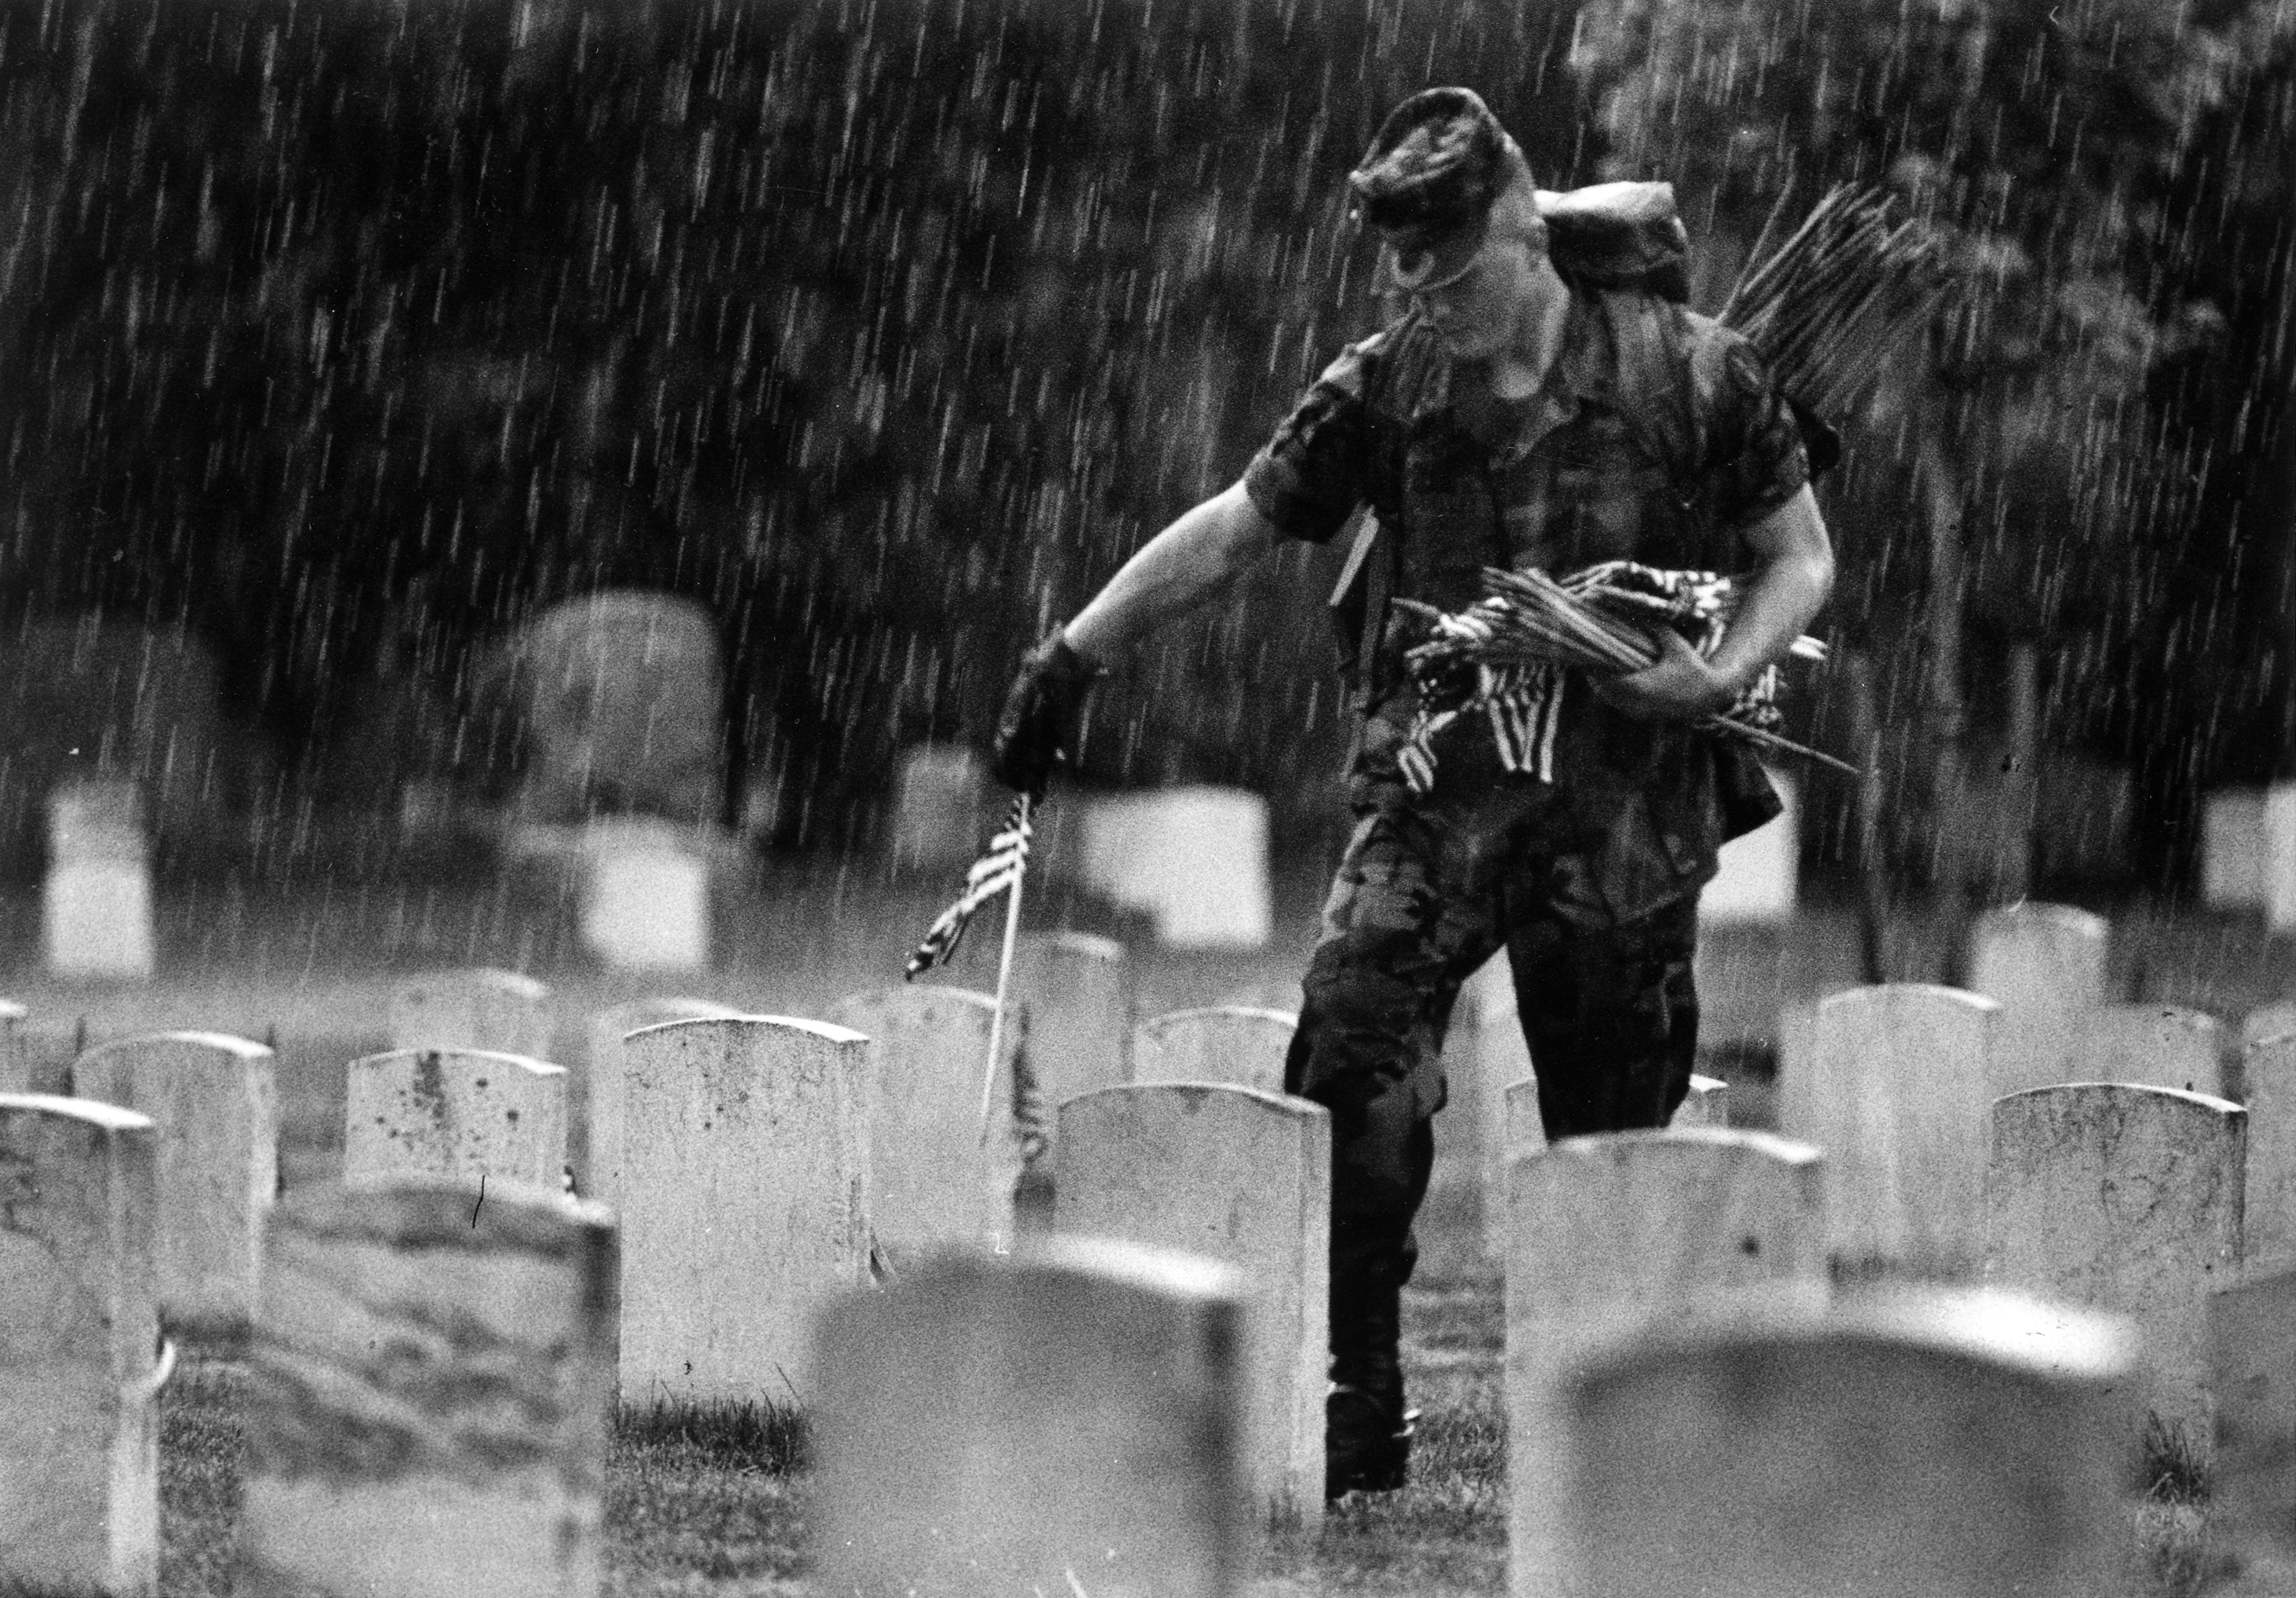 Undaunted by the downpour, a private walks amongst the headstones planting flags in Arlington National Cemetery in Va. on May 25, 1995.